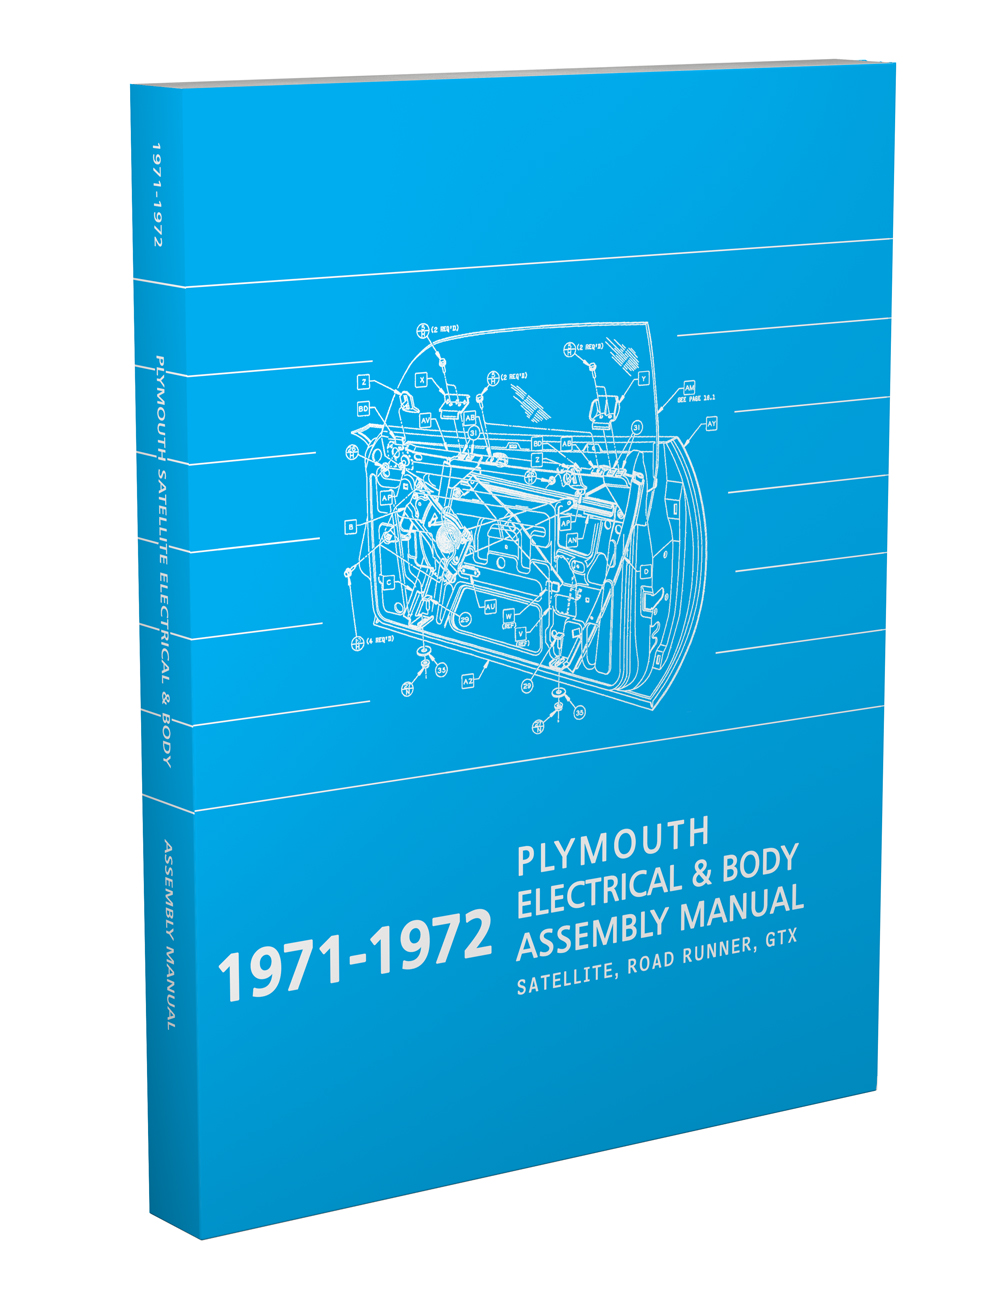 1967 Chrysler Body Assembly Manual Exploded Views of Parts Torque Specifications